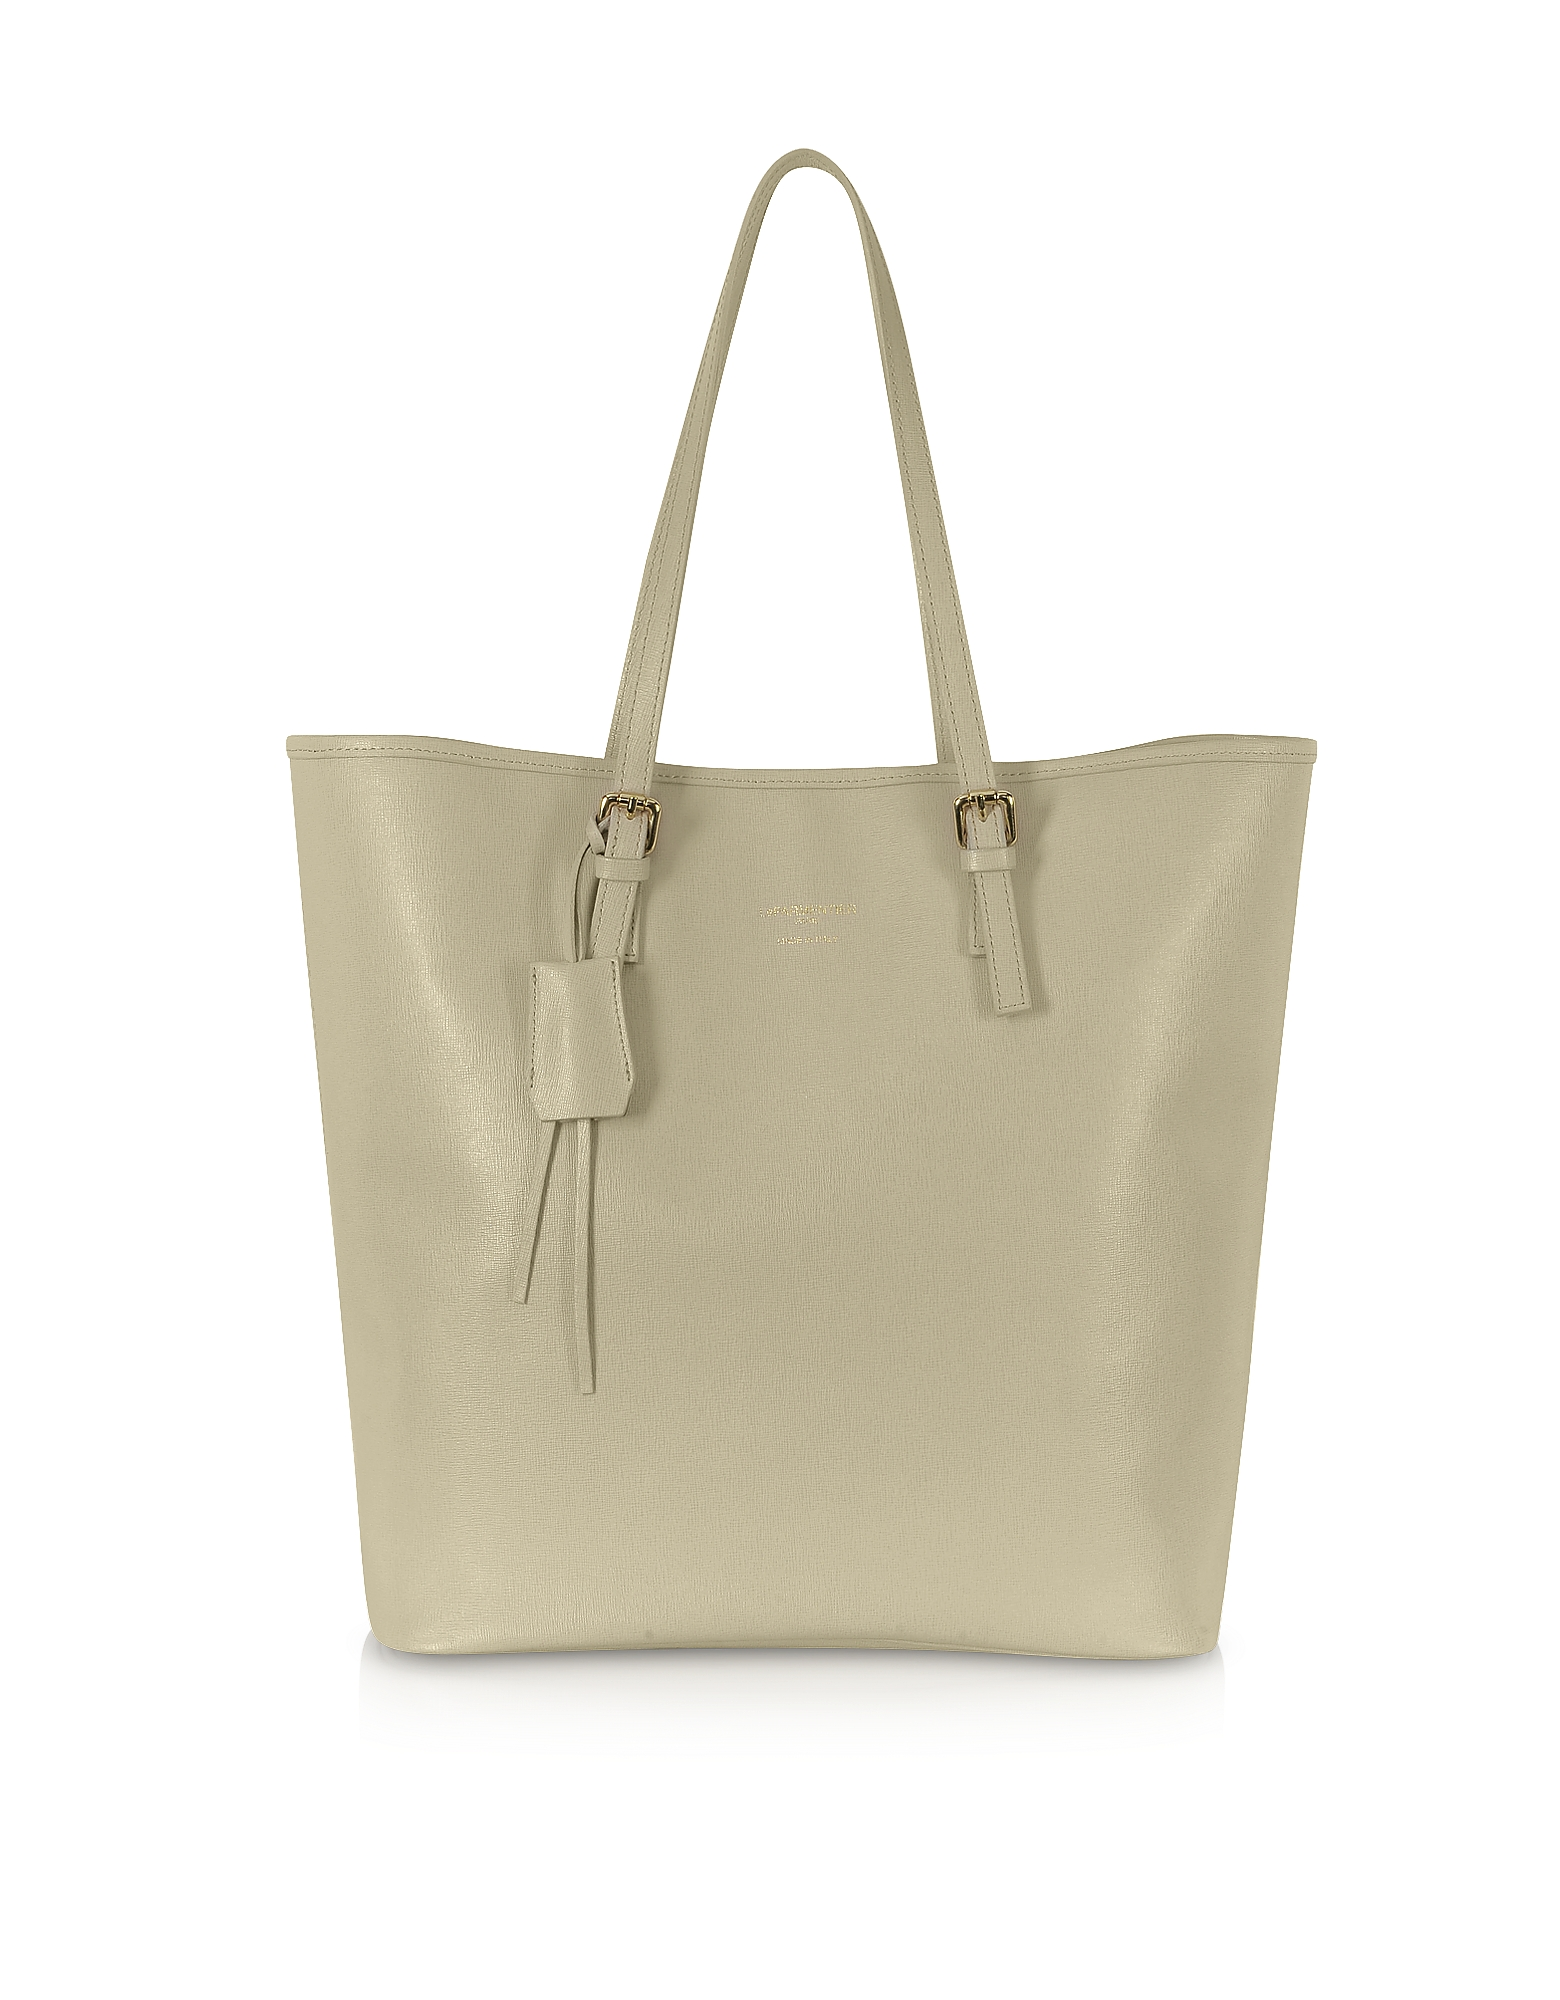 Le Parmentier Designer Handbags, Large Saffiano Leather Tote